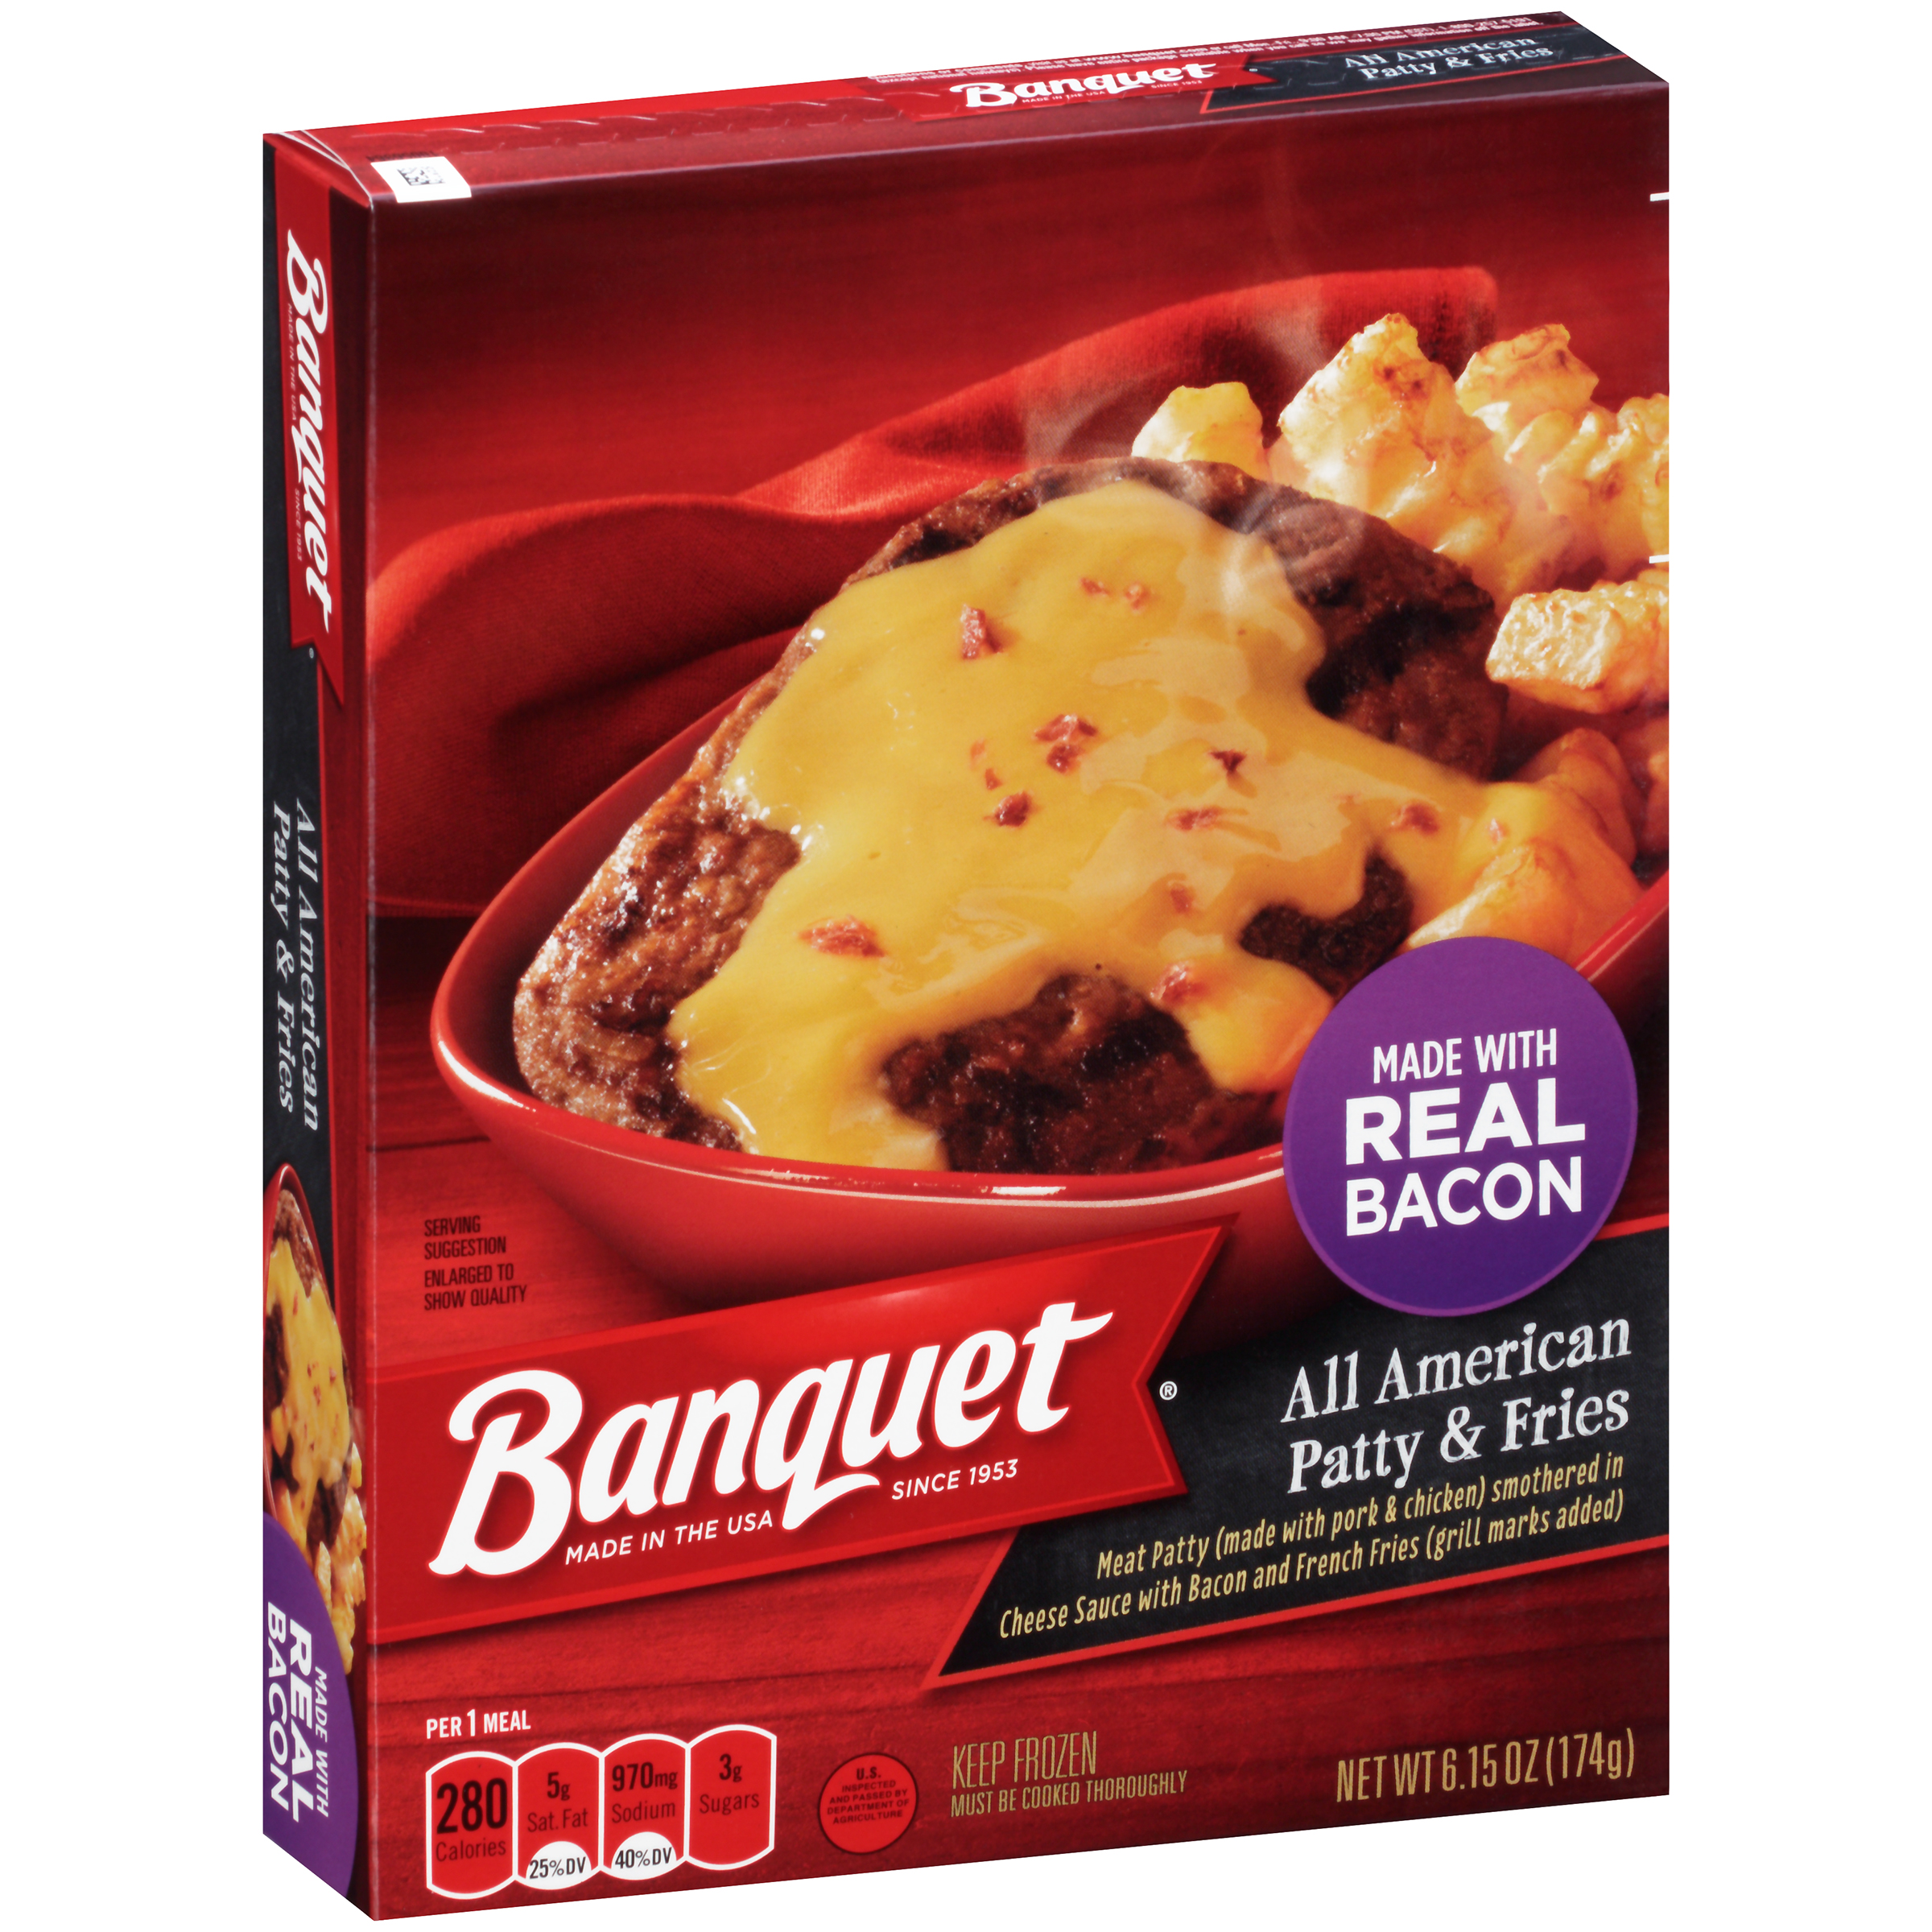 Banquet? All American Patty & Fries 6.15 oz. Box